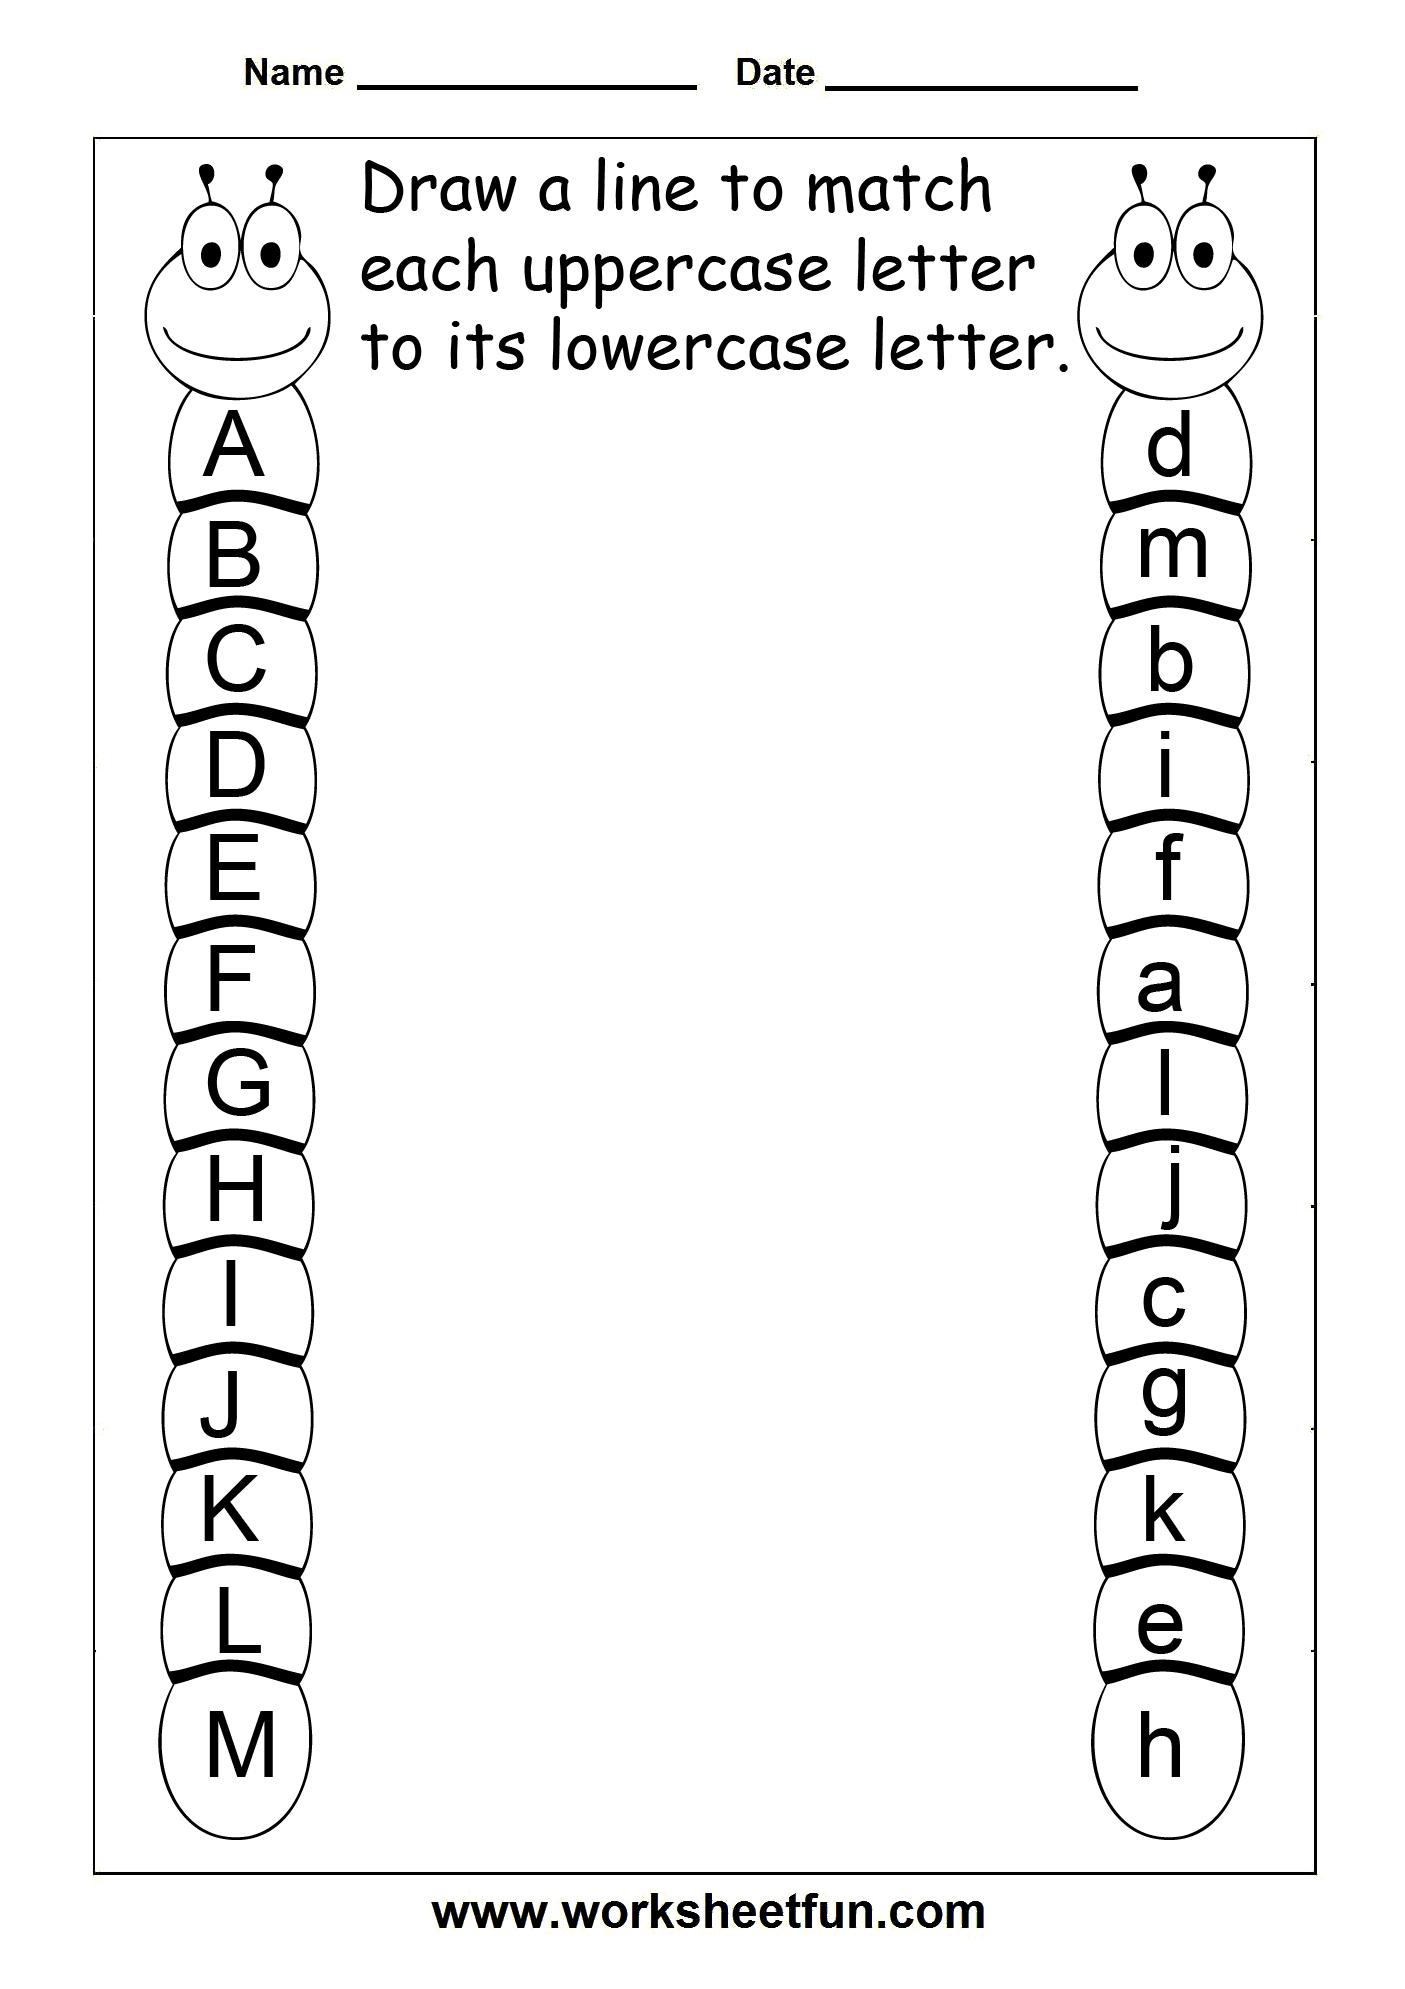 Proatmealus  Prepossessing  Images About Work Worksheet On Pinterest  Hidden Pictures  With Heavenly  Images About Work Worksheet On Pinterest  Hidden Pictures Color By Numbers And Puzzles With Cool Alphabet Tracing Worksheet Free Also Teaching Numbers To Preschoolers Worksheets In Addition Handwriting Worksheets Ks And Suffixes Worksheets For Grade  As Well As Pronouns Printable Worksheets Additionally Converting Length Worksheet From Pinterestcom With Proatmealus  Heavenly  Images About Work Worksheet On Pinterest  Hidden Pictures  With Cool  Images About Work Worksheet On Pinterest  Hidden Pictures Color By Numbers And Puzzles And Prepossessing Alphabet Tracing Worksheet Free Also Teaching Numbers To Preschoolers Worksheets In Addition Handwriting Worksheets Ks From Pinterestcom